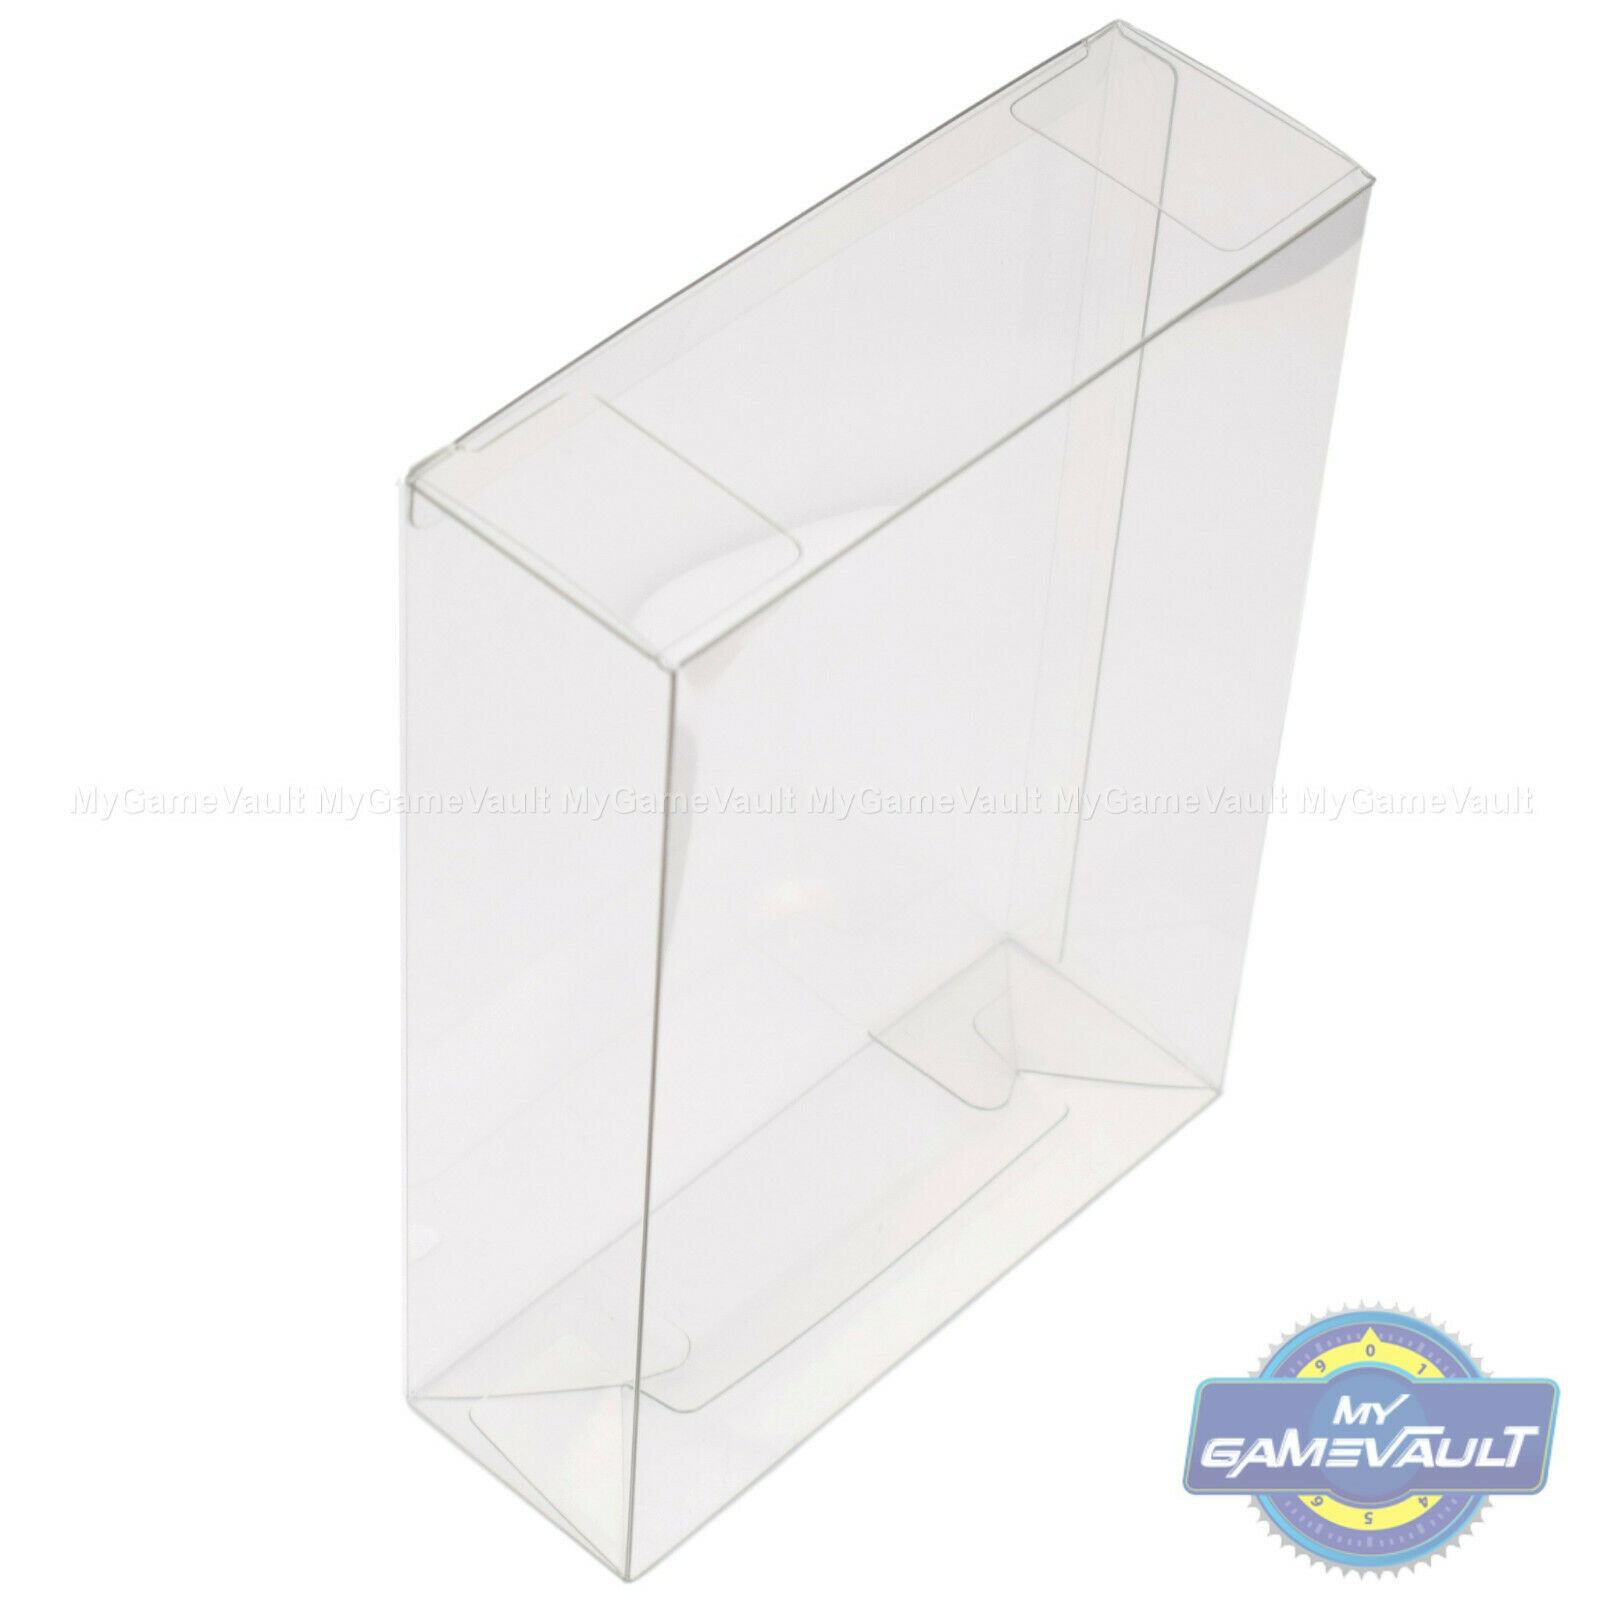 1 x Triple Xbox Game Box Protector STRONG 0.5mm Plastic Protective Display Case